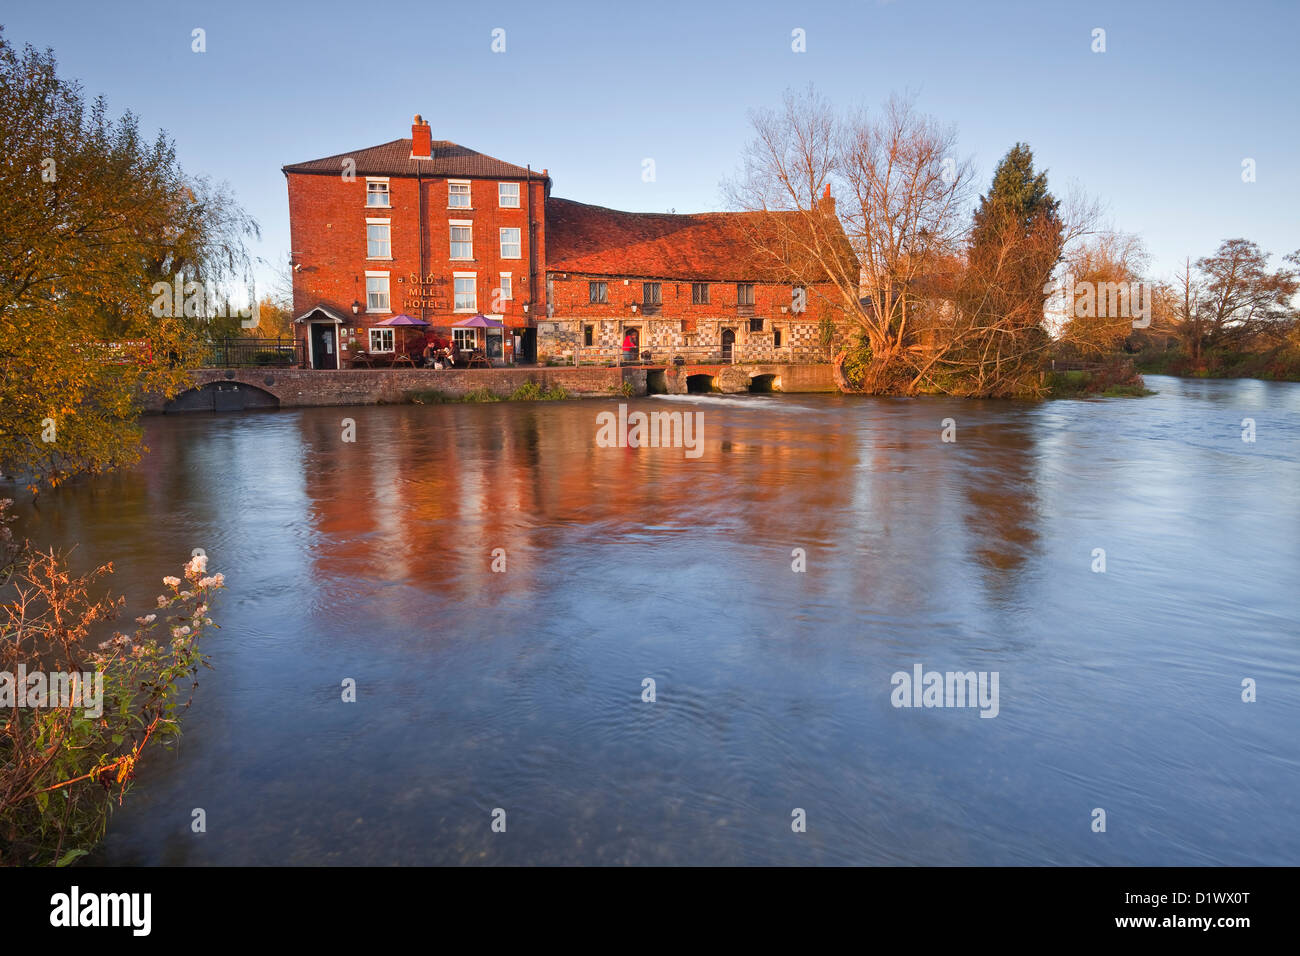 The Old Mill pub, restaurant and hotel in Harnham. Stock Photo